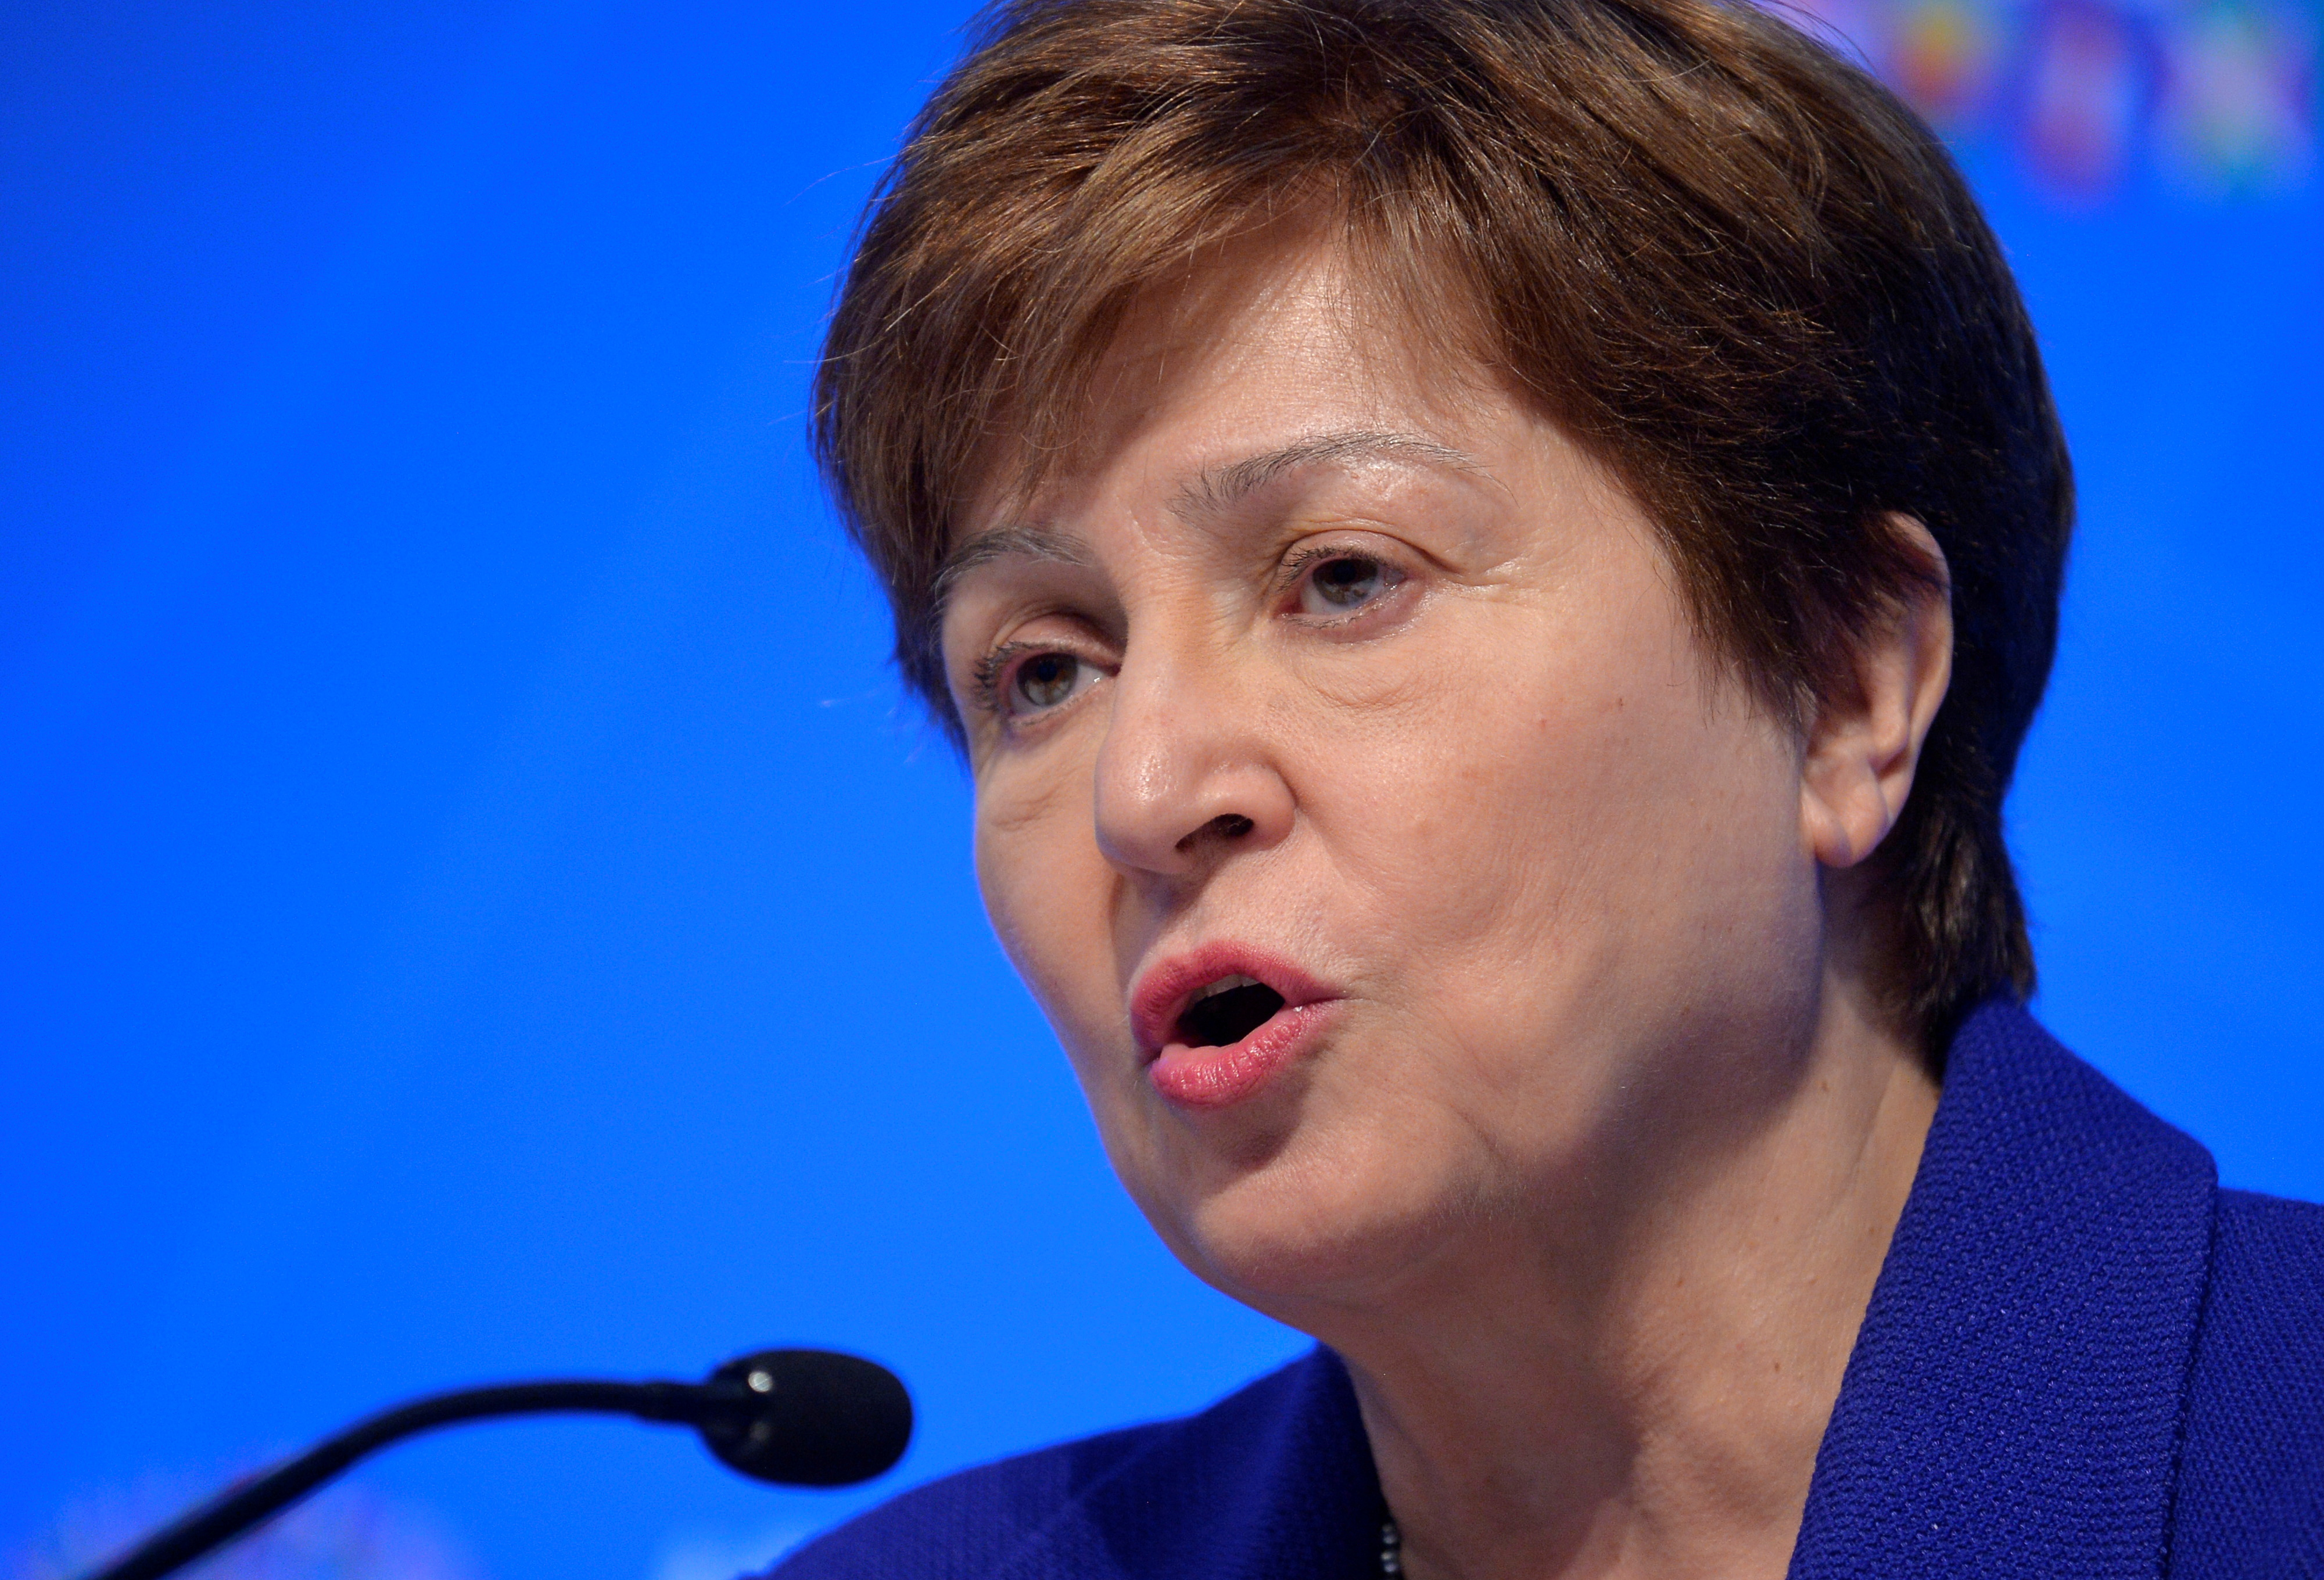 International Monetary Fund (IMF) Managing Director Kristalina Georgieva makes remarks during a closing news conference for the International Monetary Finance Committee (IMFC), during the IMF and World Bank's 2019 Annual Meetings of finance ministers and bank governors, in Washington, U.S., October 19, 2019.   REUTERS/Mike Theiler